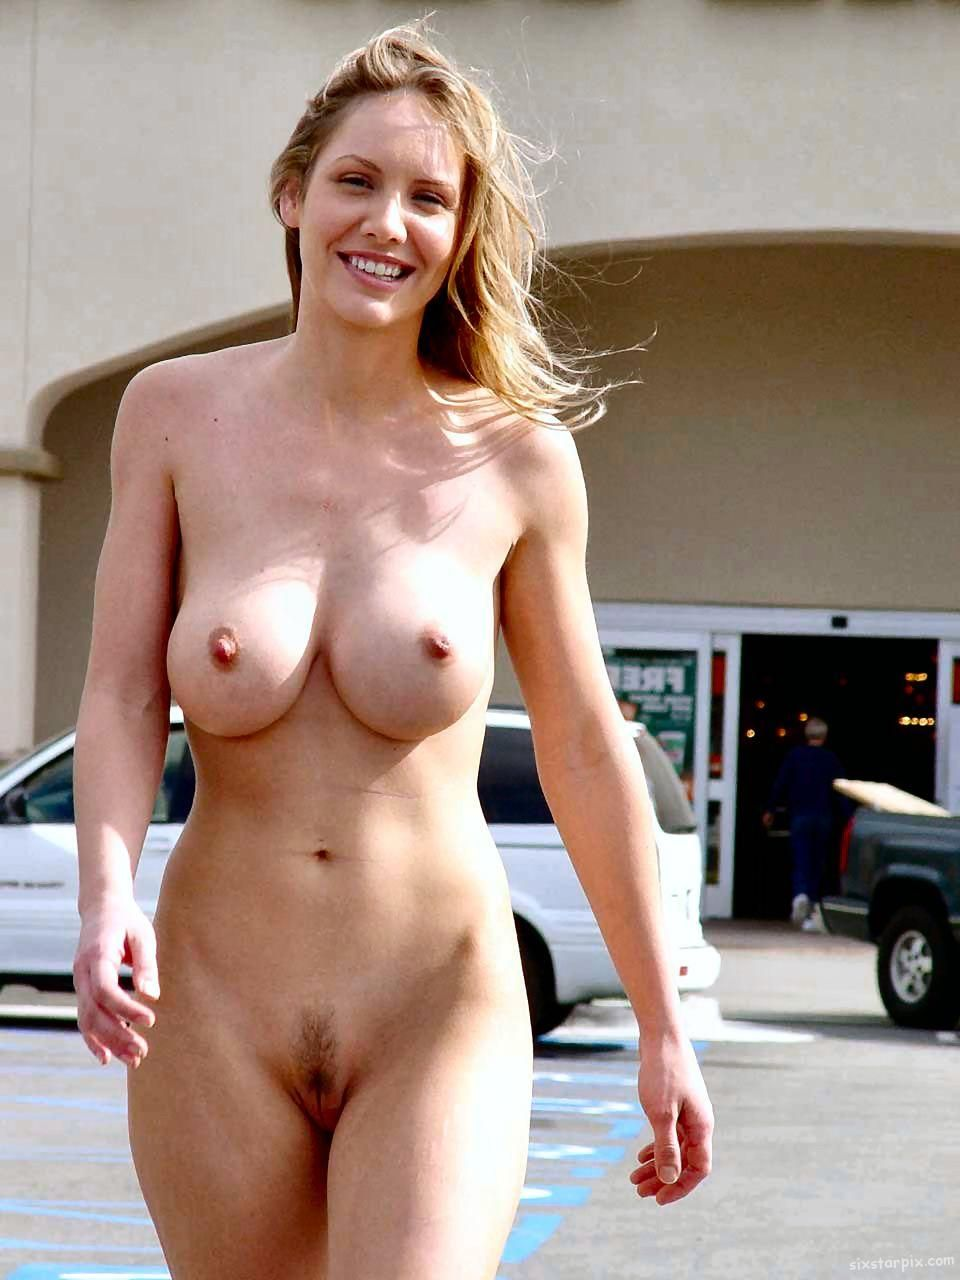 Hot mom strips naked